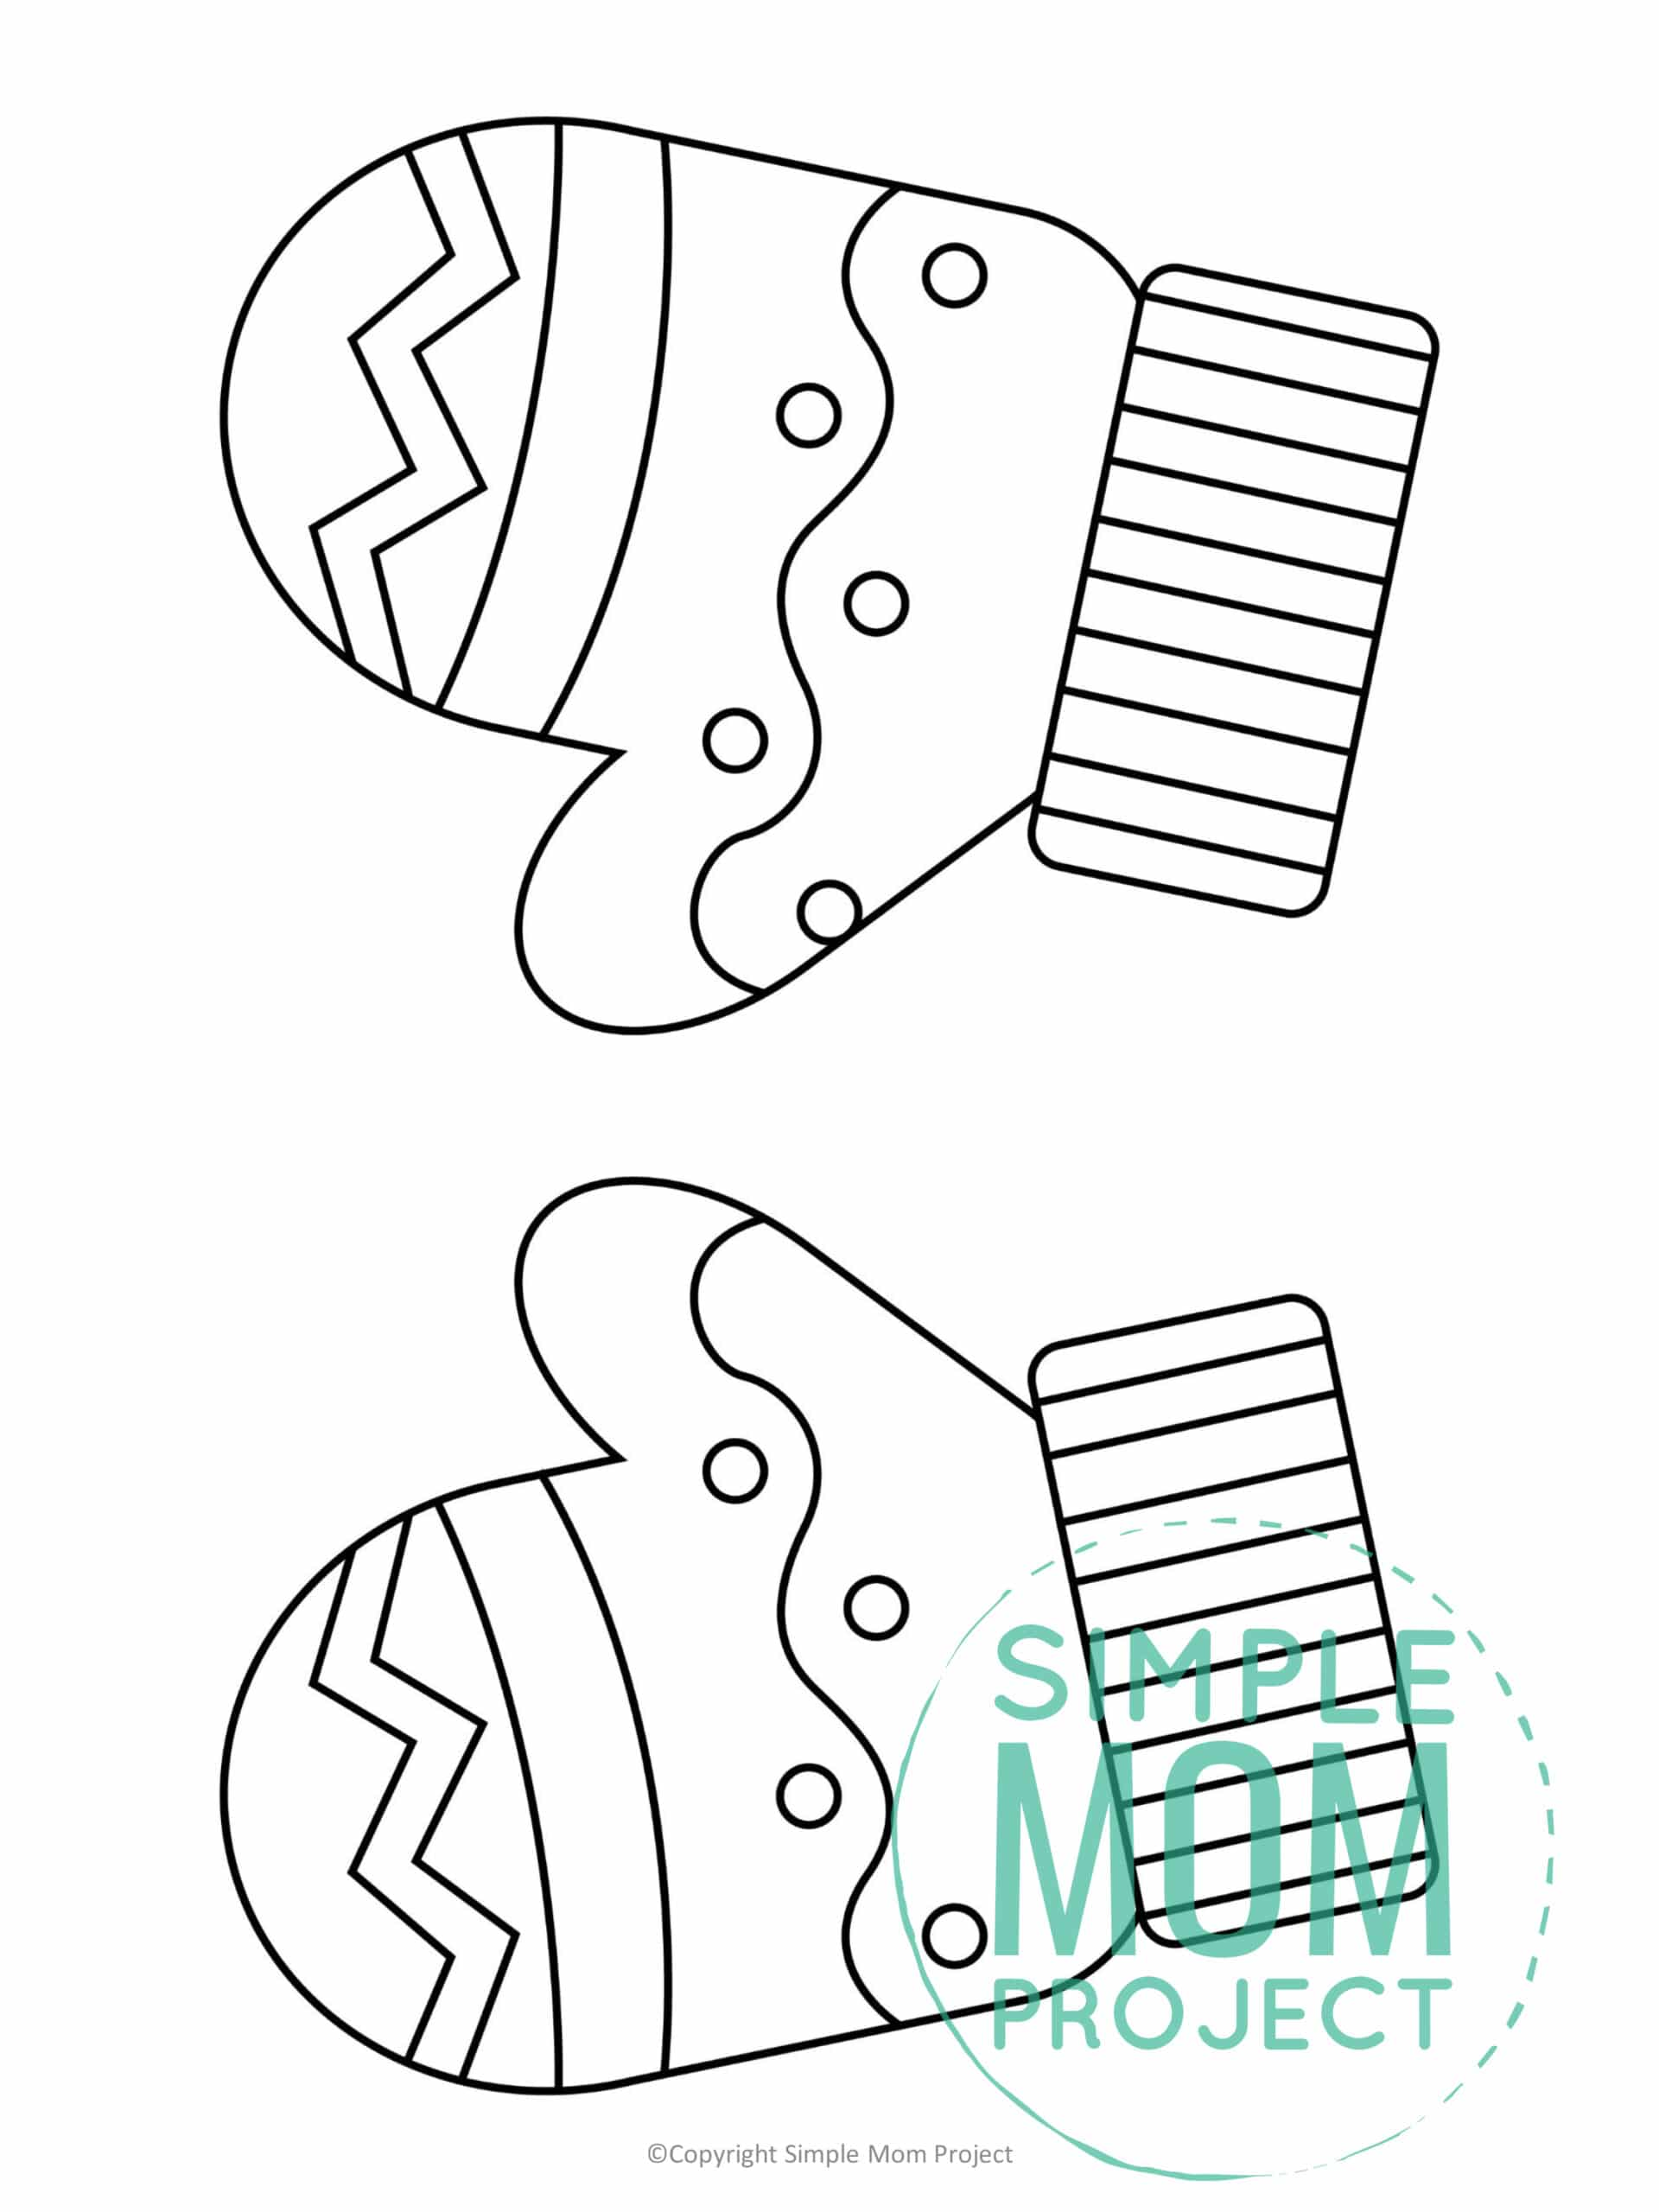 Printable Mittens Template coloring page for preschoolers, toddlers and kindergartners 1